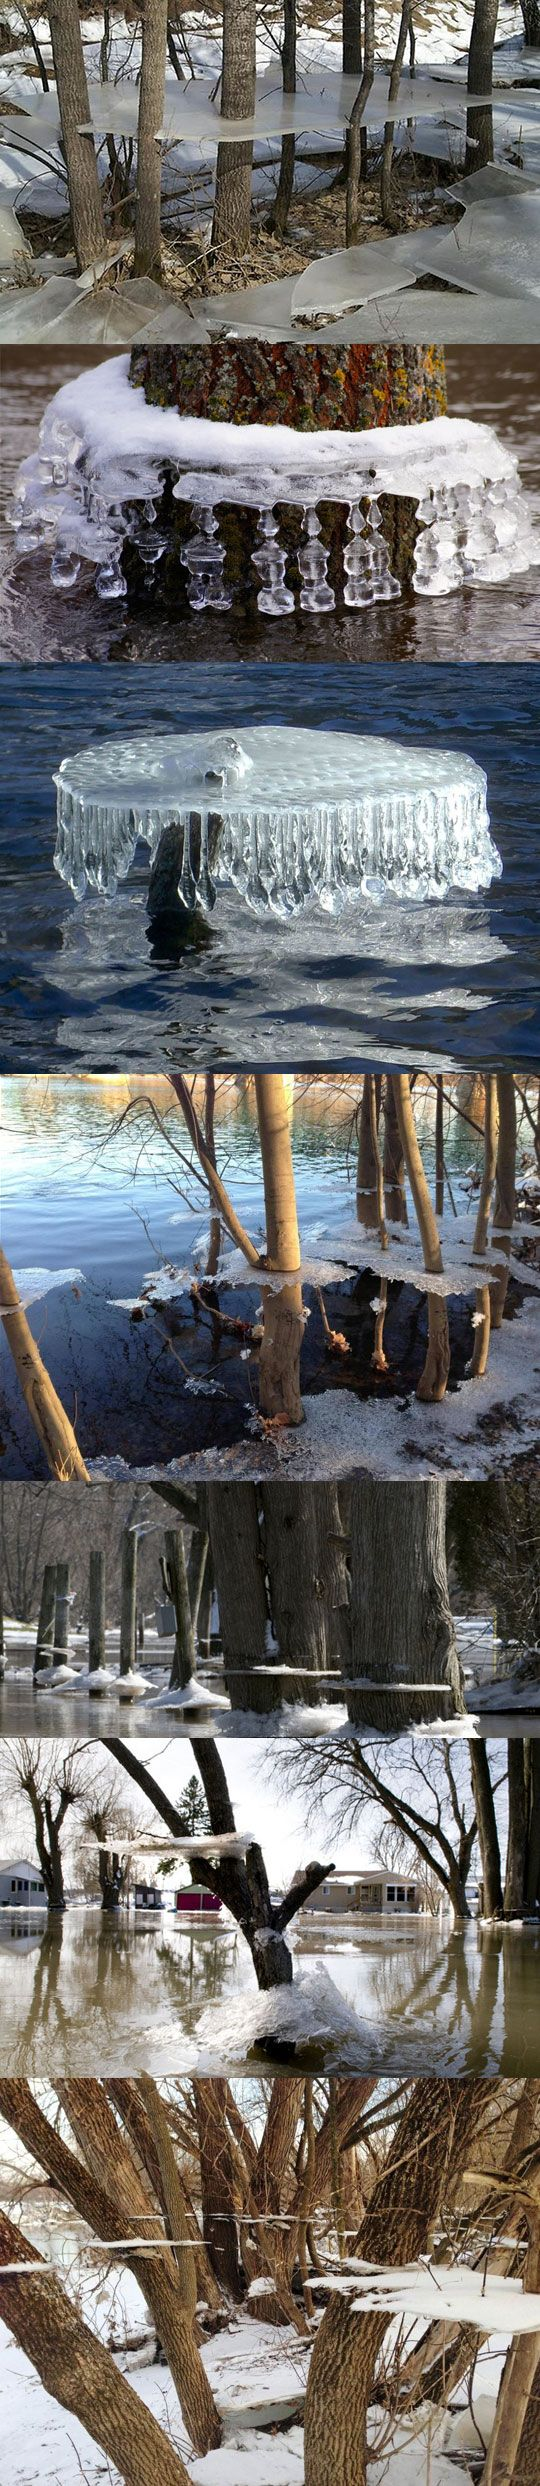 ice suspended on trees from winter flooding...